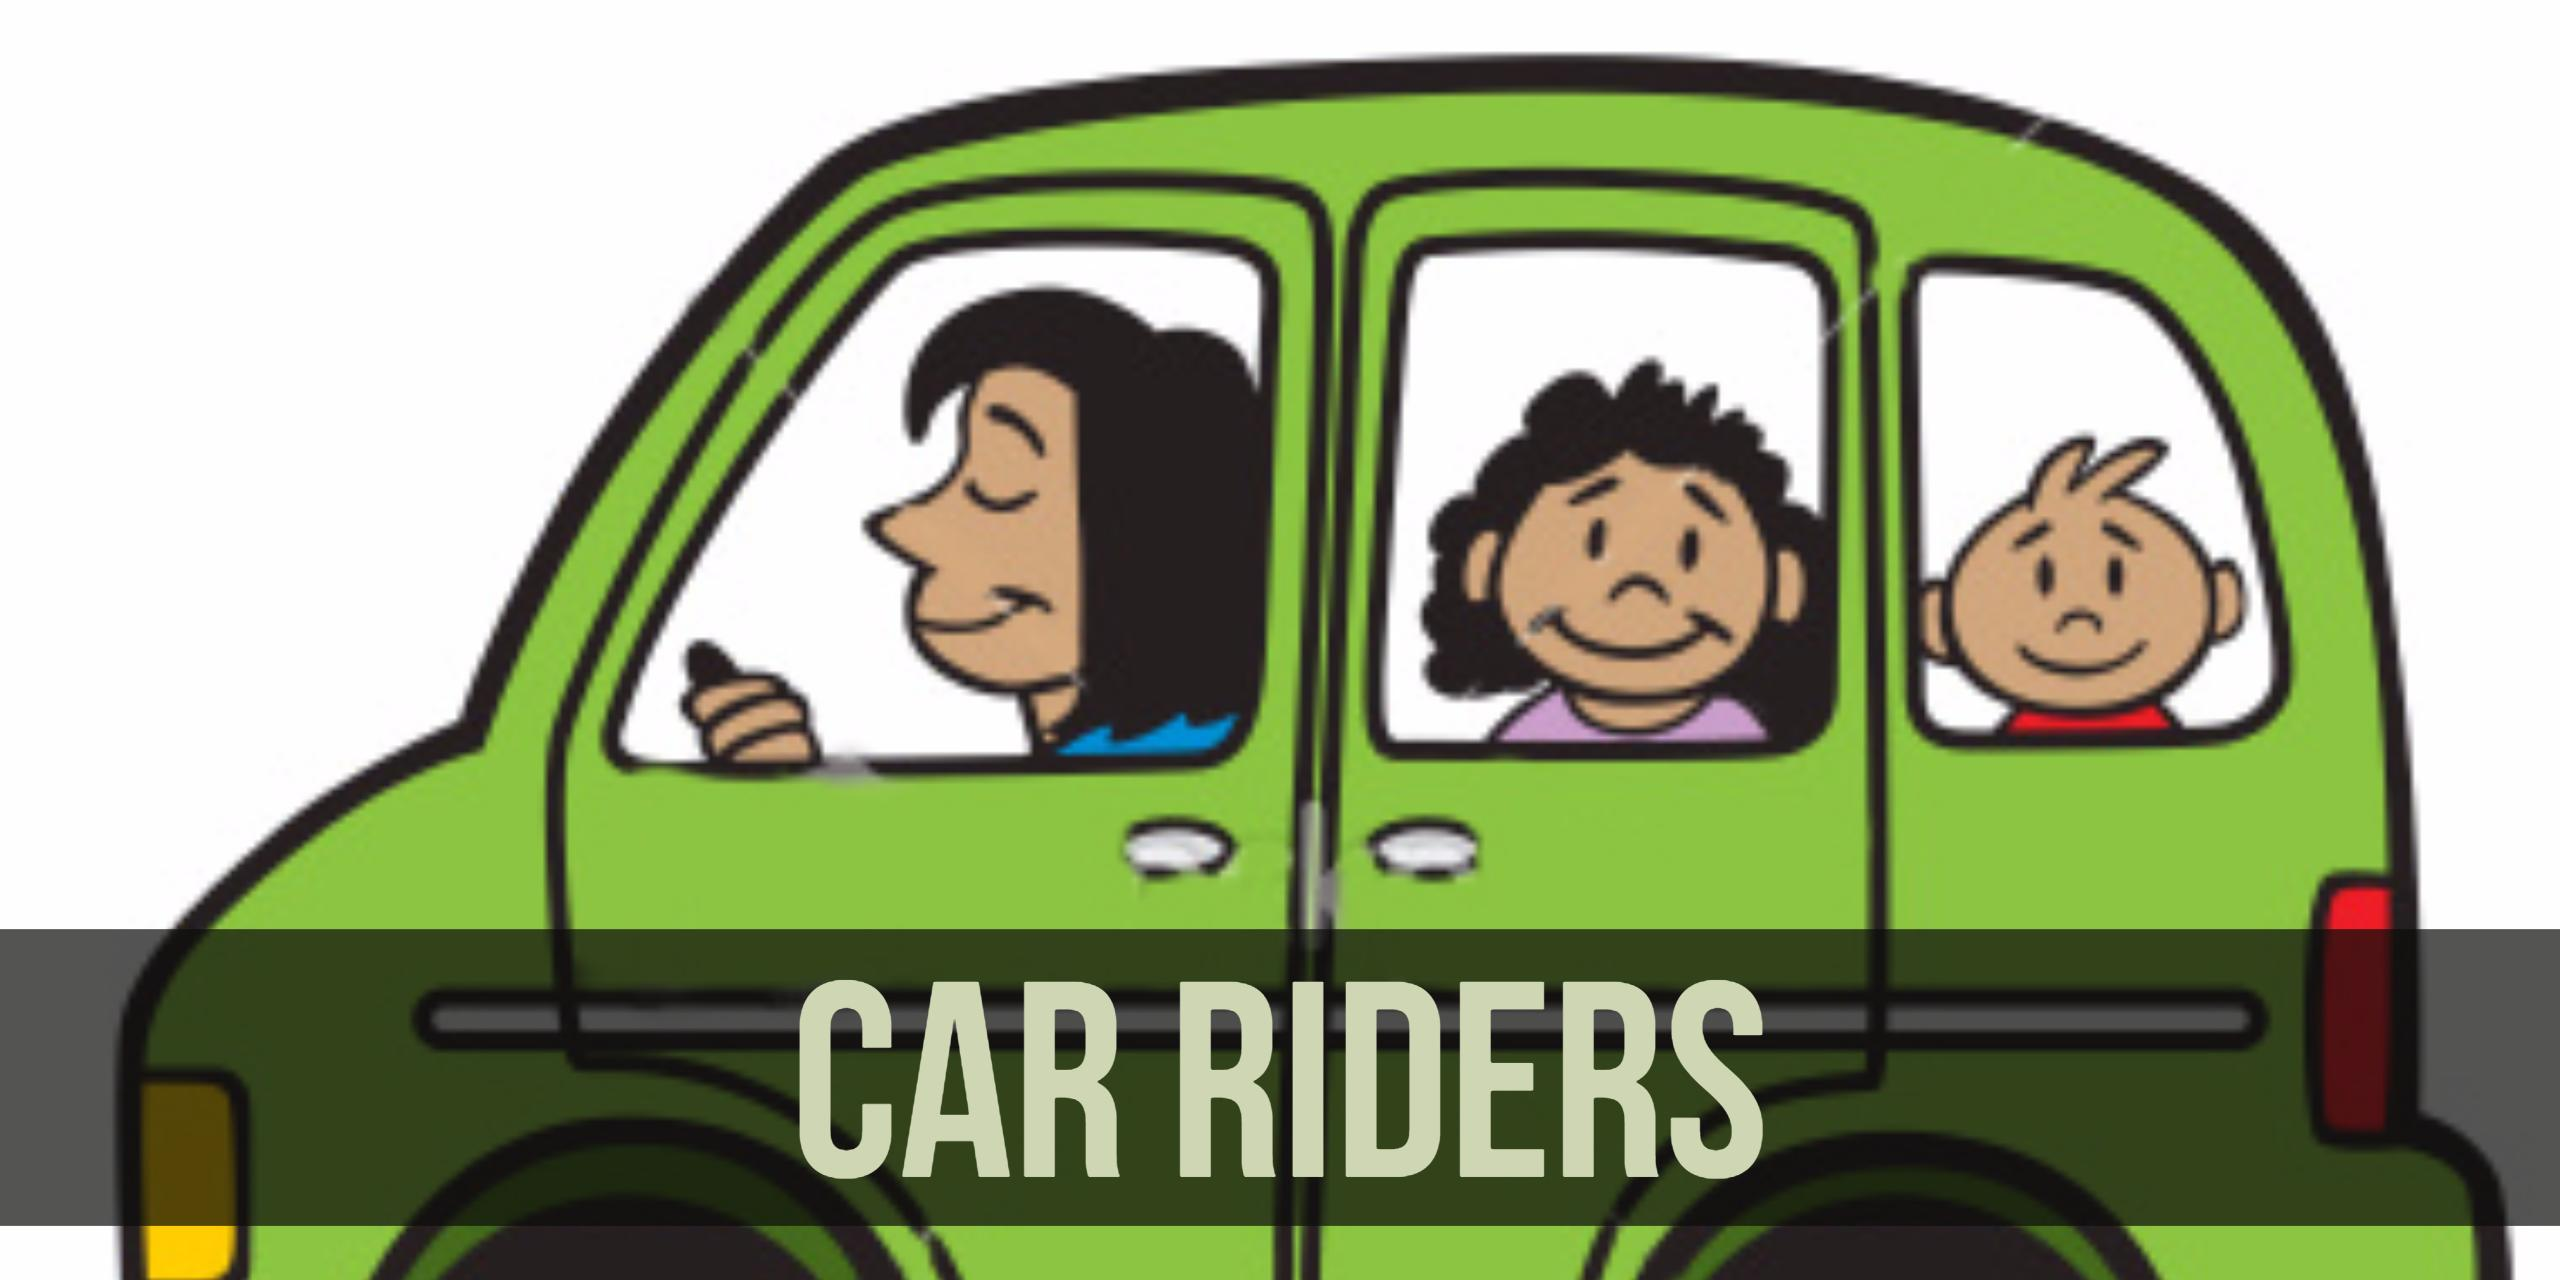 Car rider clipart 2 » Clipart Station.